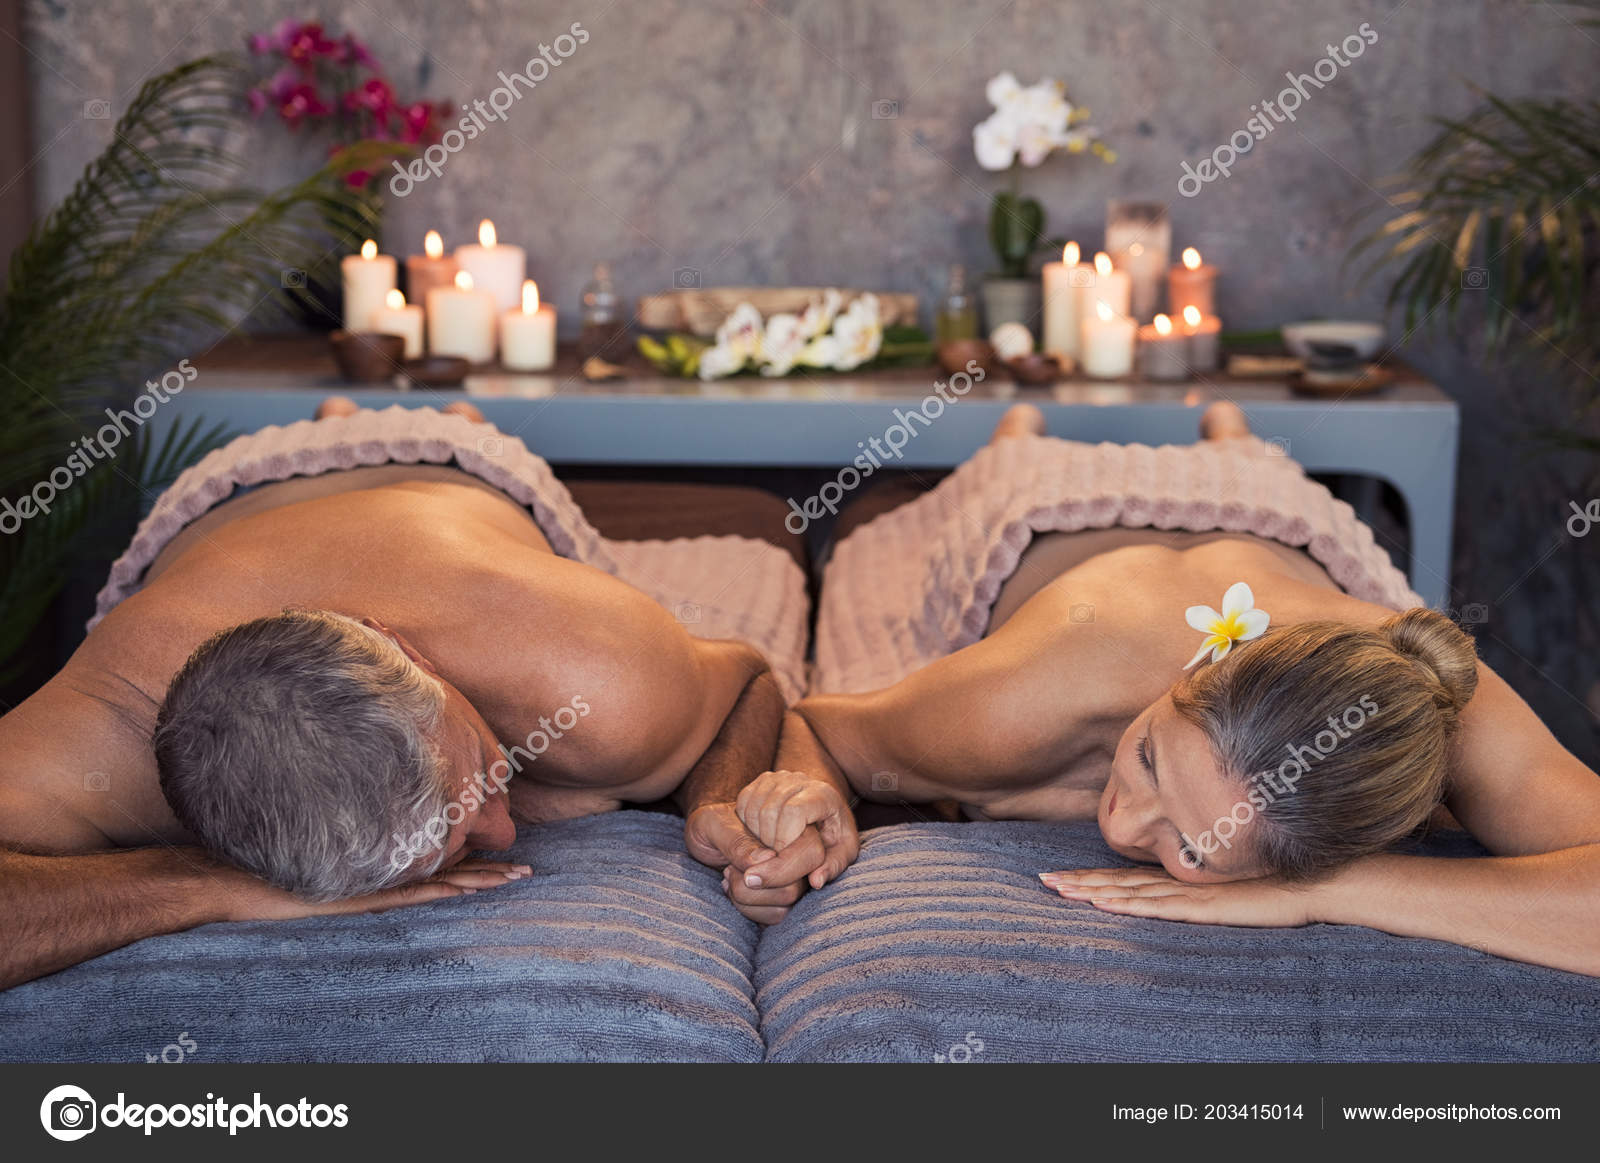 Couples spa naked